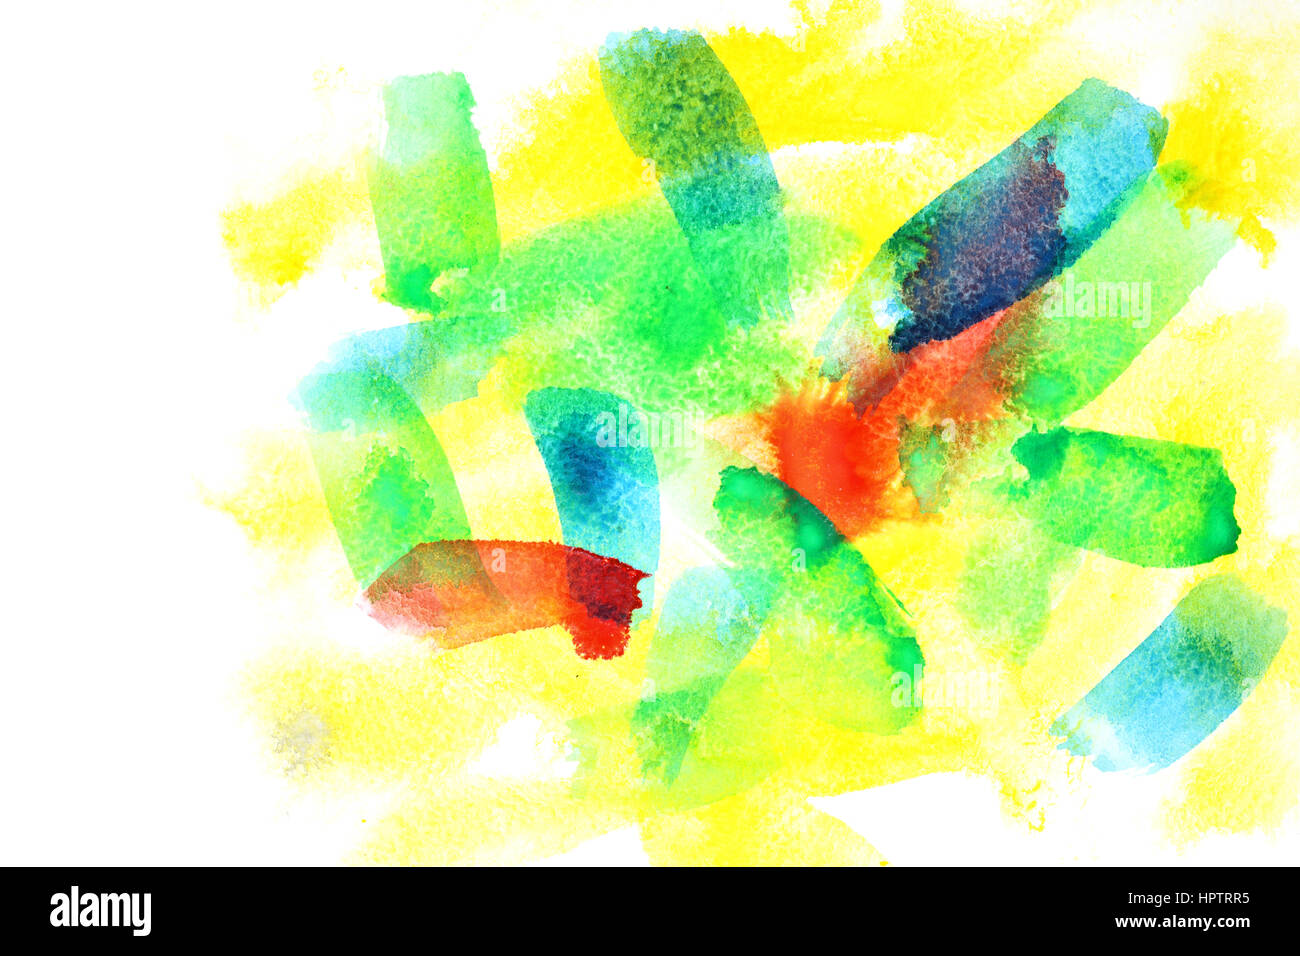 Variegated abstract watercolor background with copyspace Stock Photo